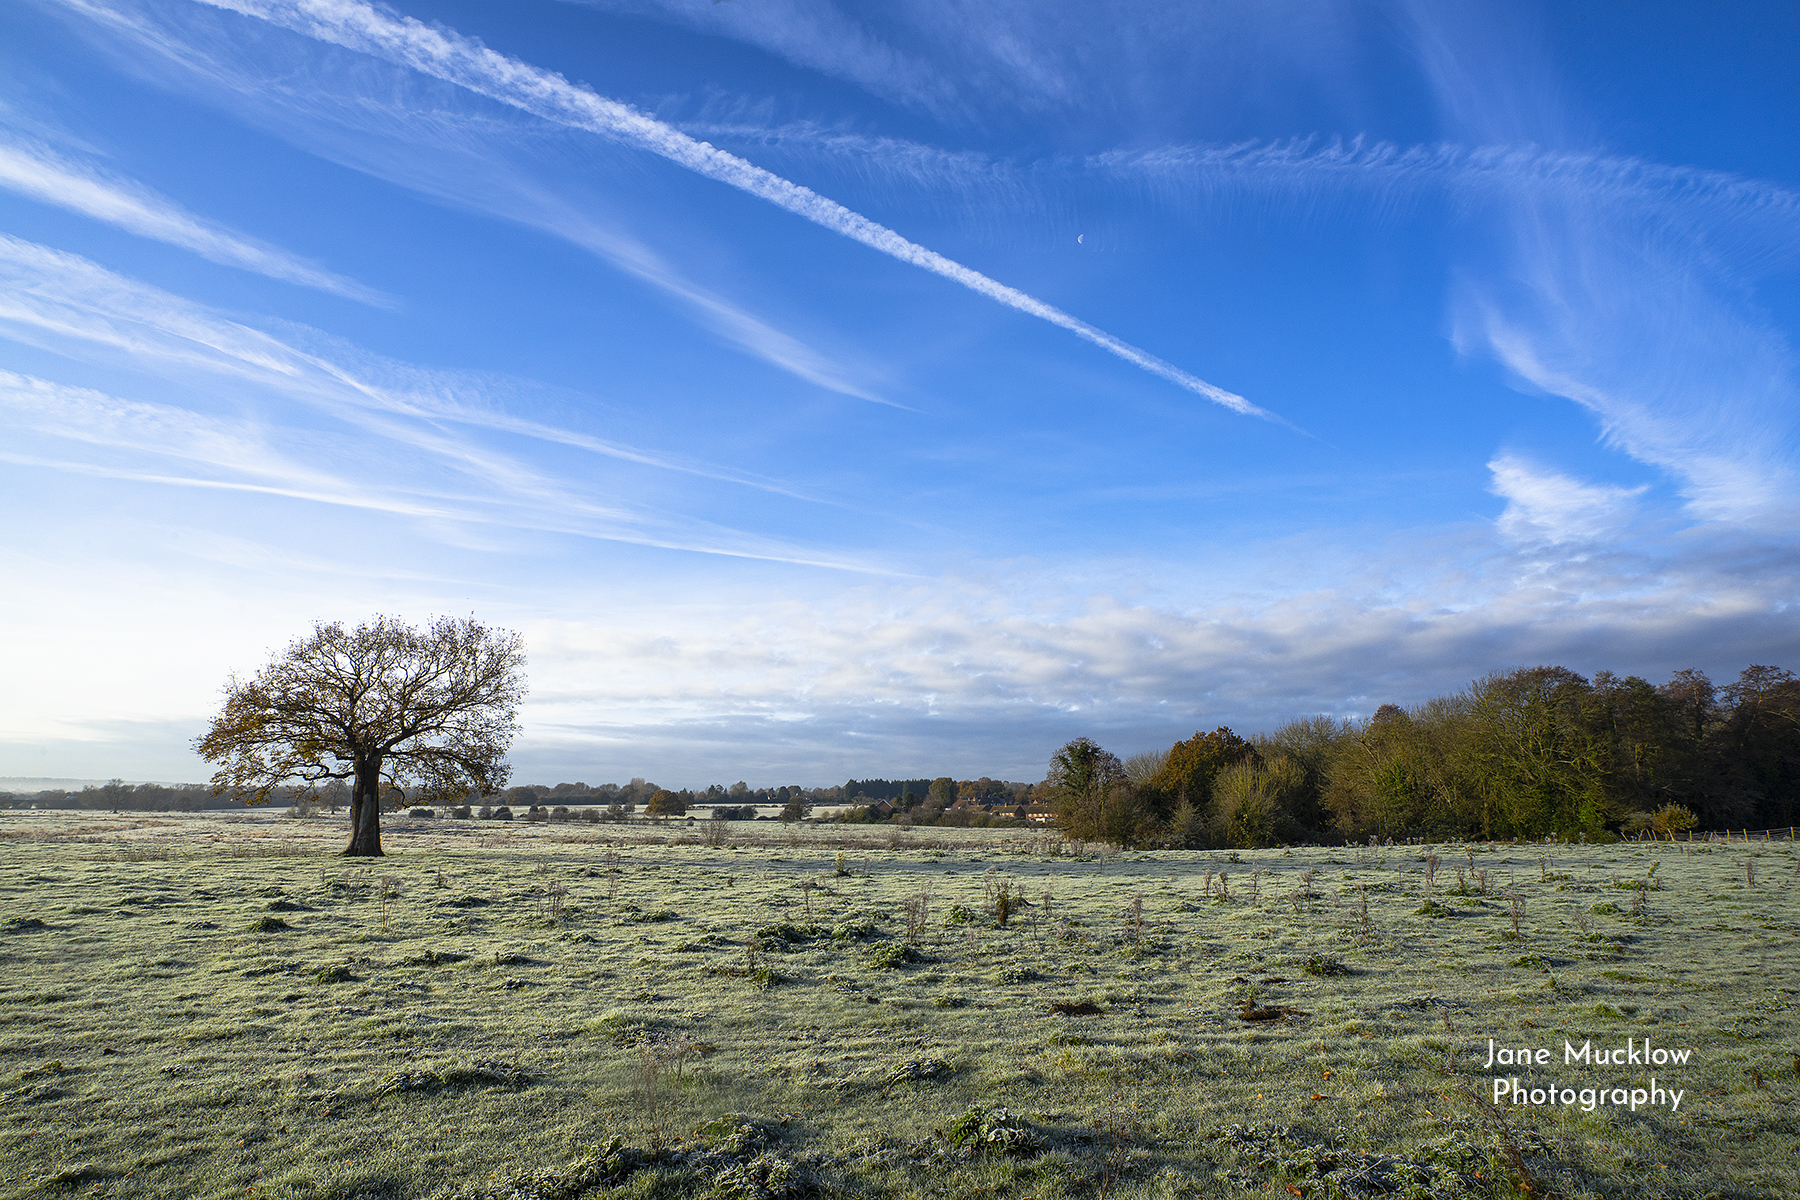 Photo of the Lone Tree, Otford, frosty winter morning, by Jane Mucklow